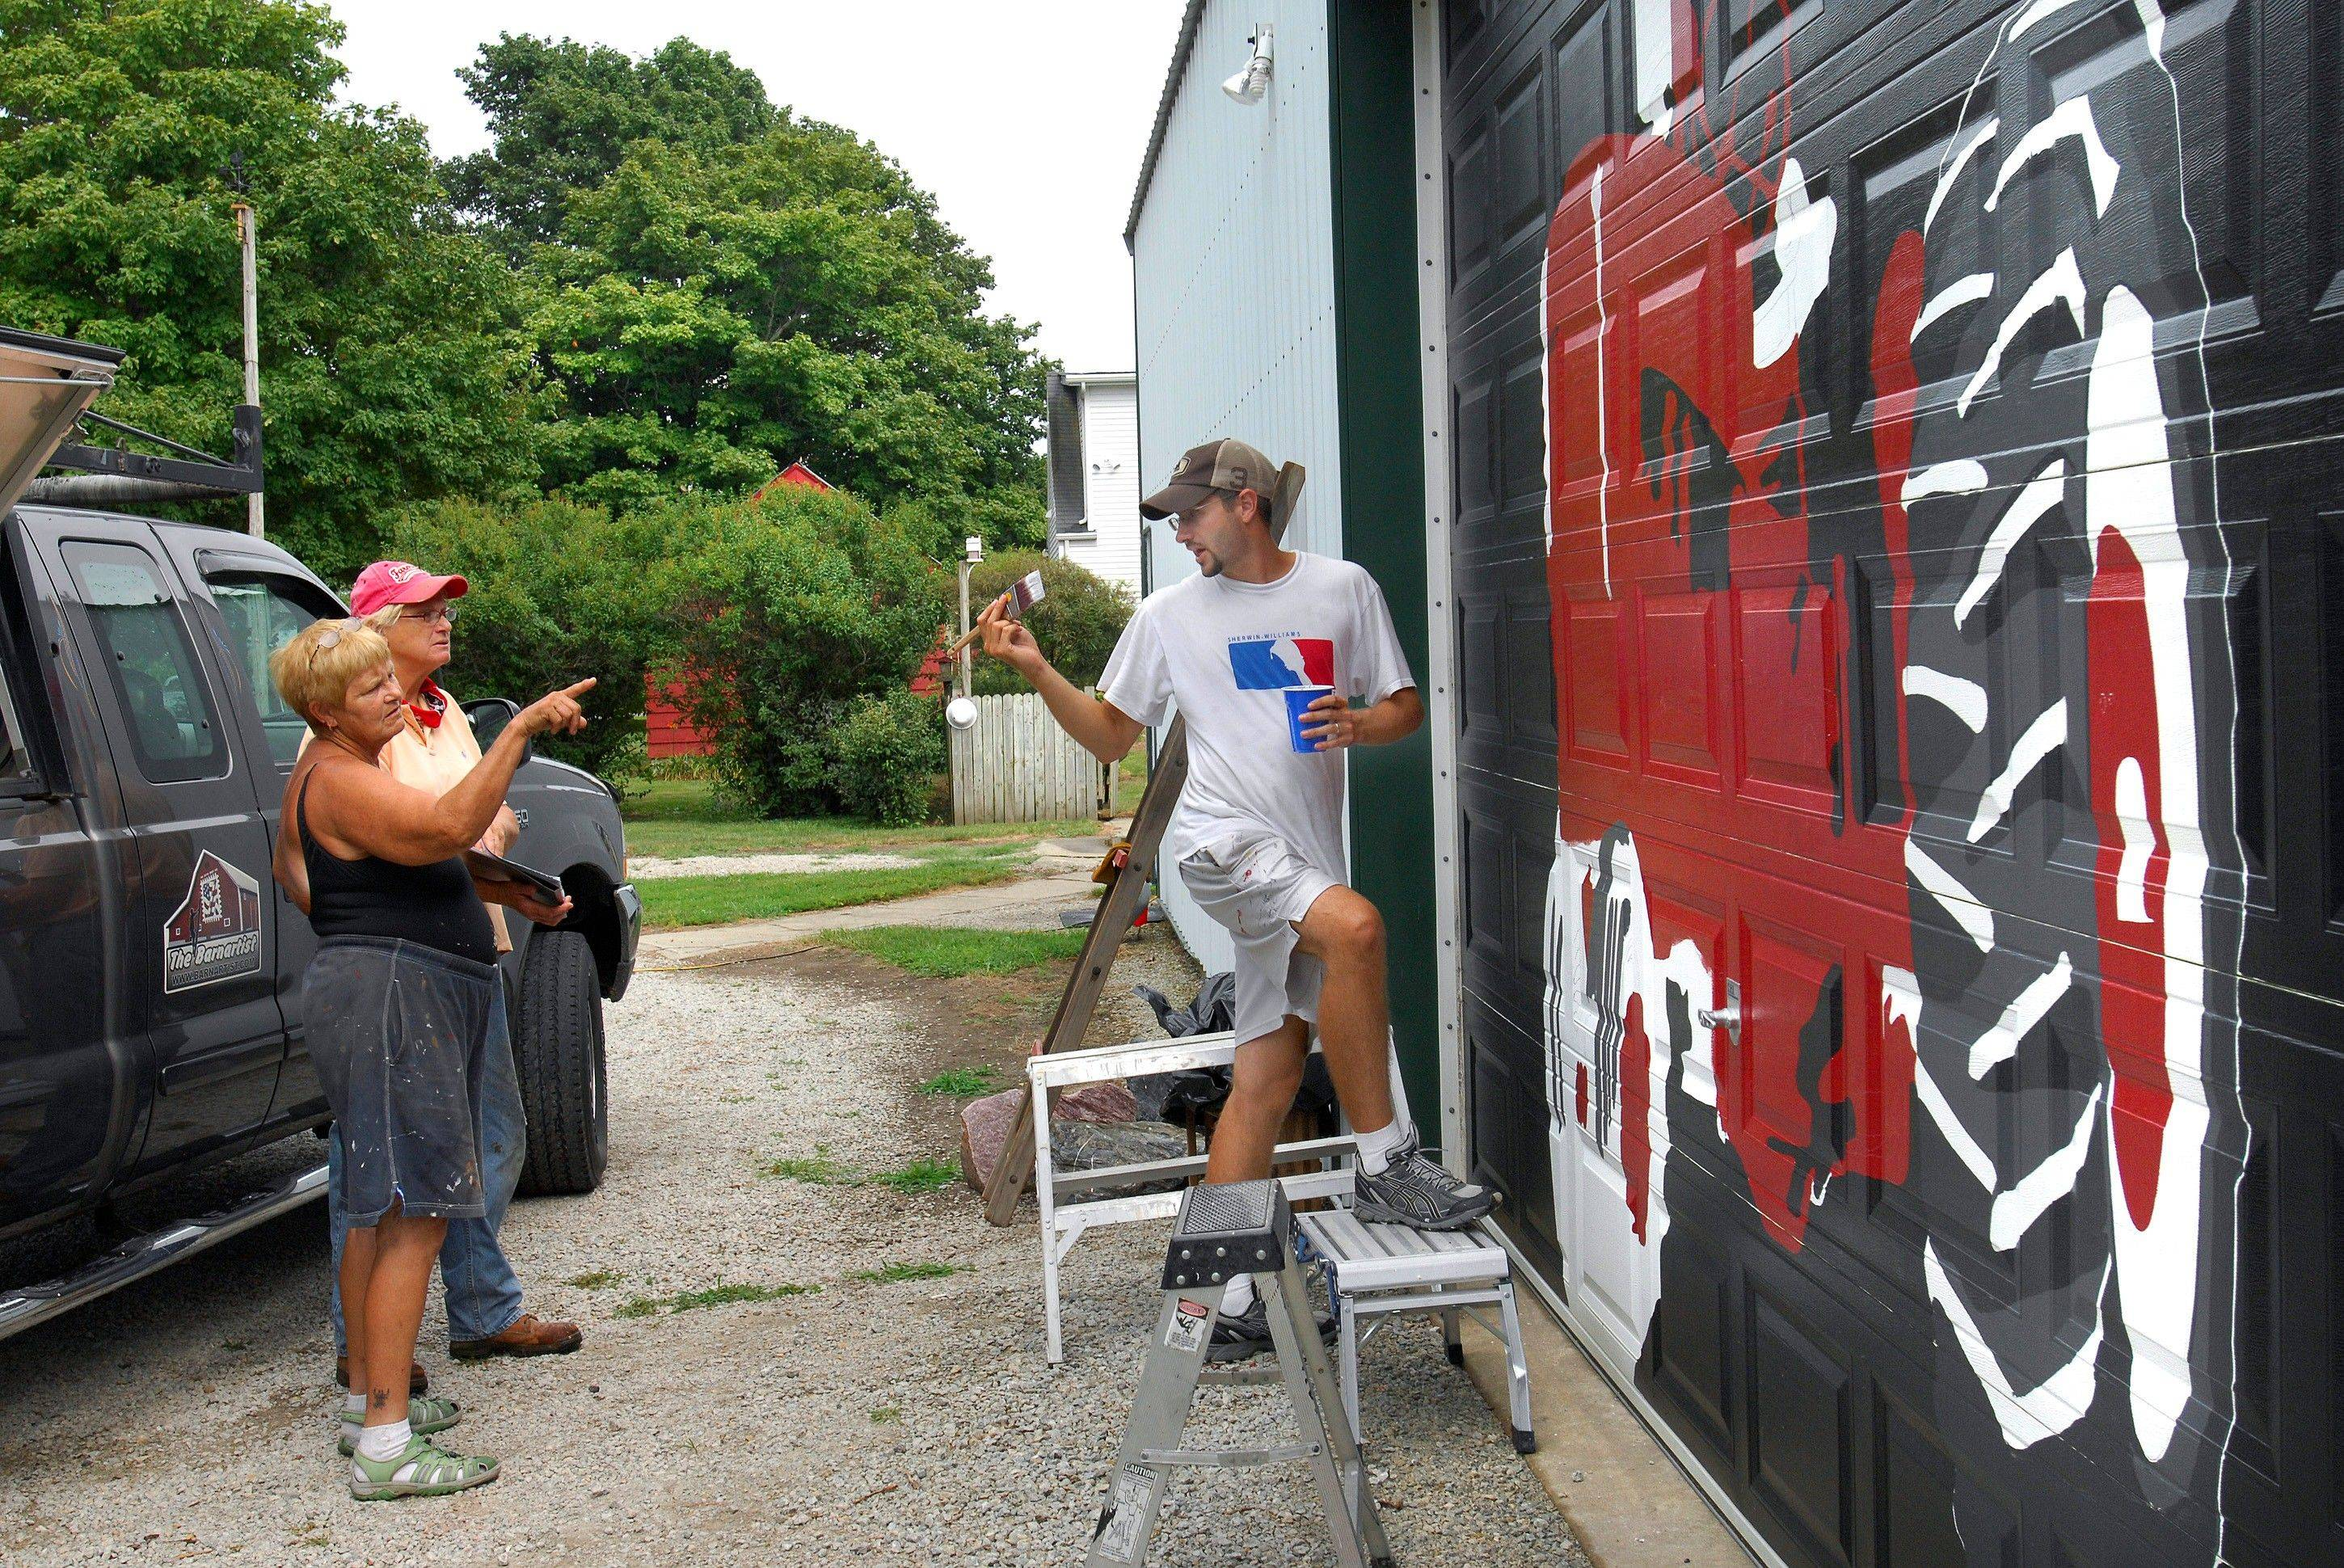 Jo Morrison, left, and her friend Donna Dubbelde talk with barn artist Scott Hagan while he paints a mural of a tractor on Morrison's shed door.